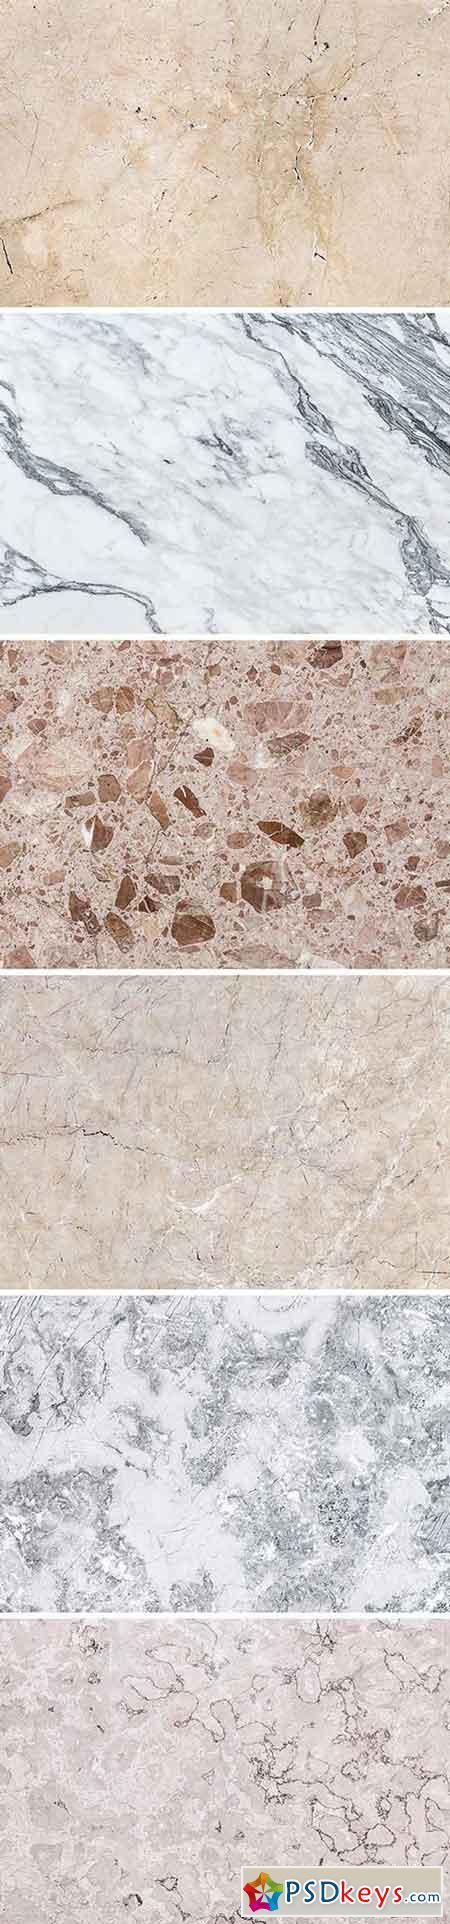 6 Marble Textures Vol.3